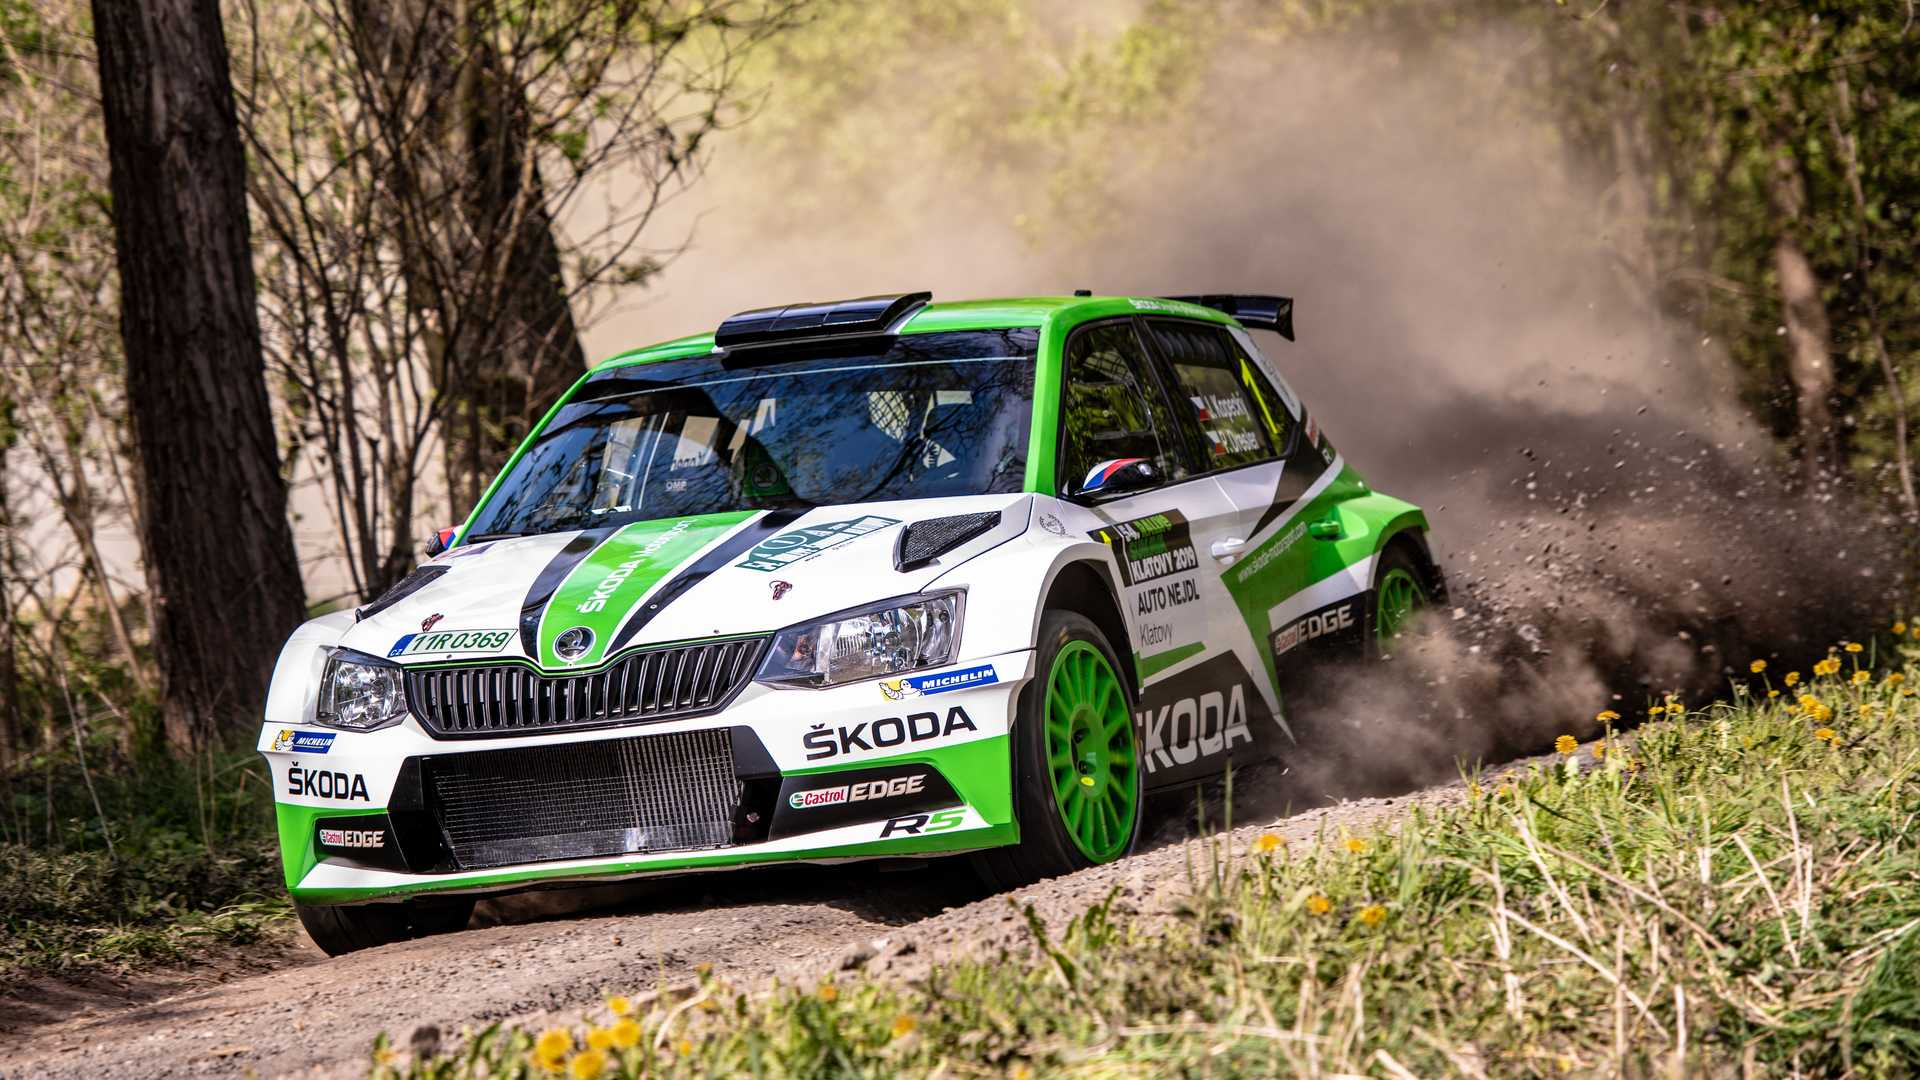 This Is The The Greatest Skoda Ever As Voted By Fans